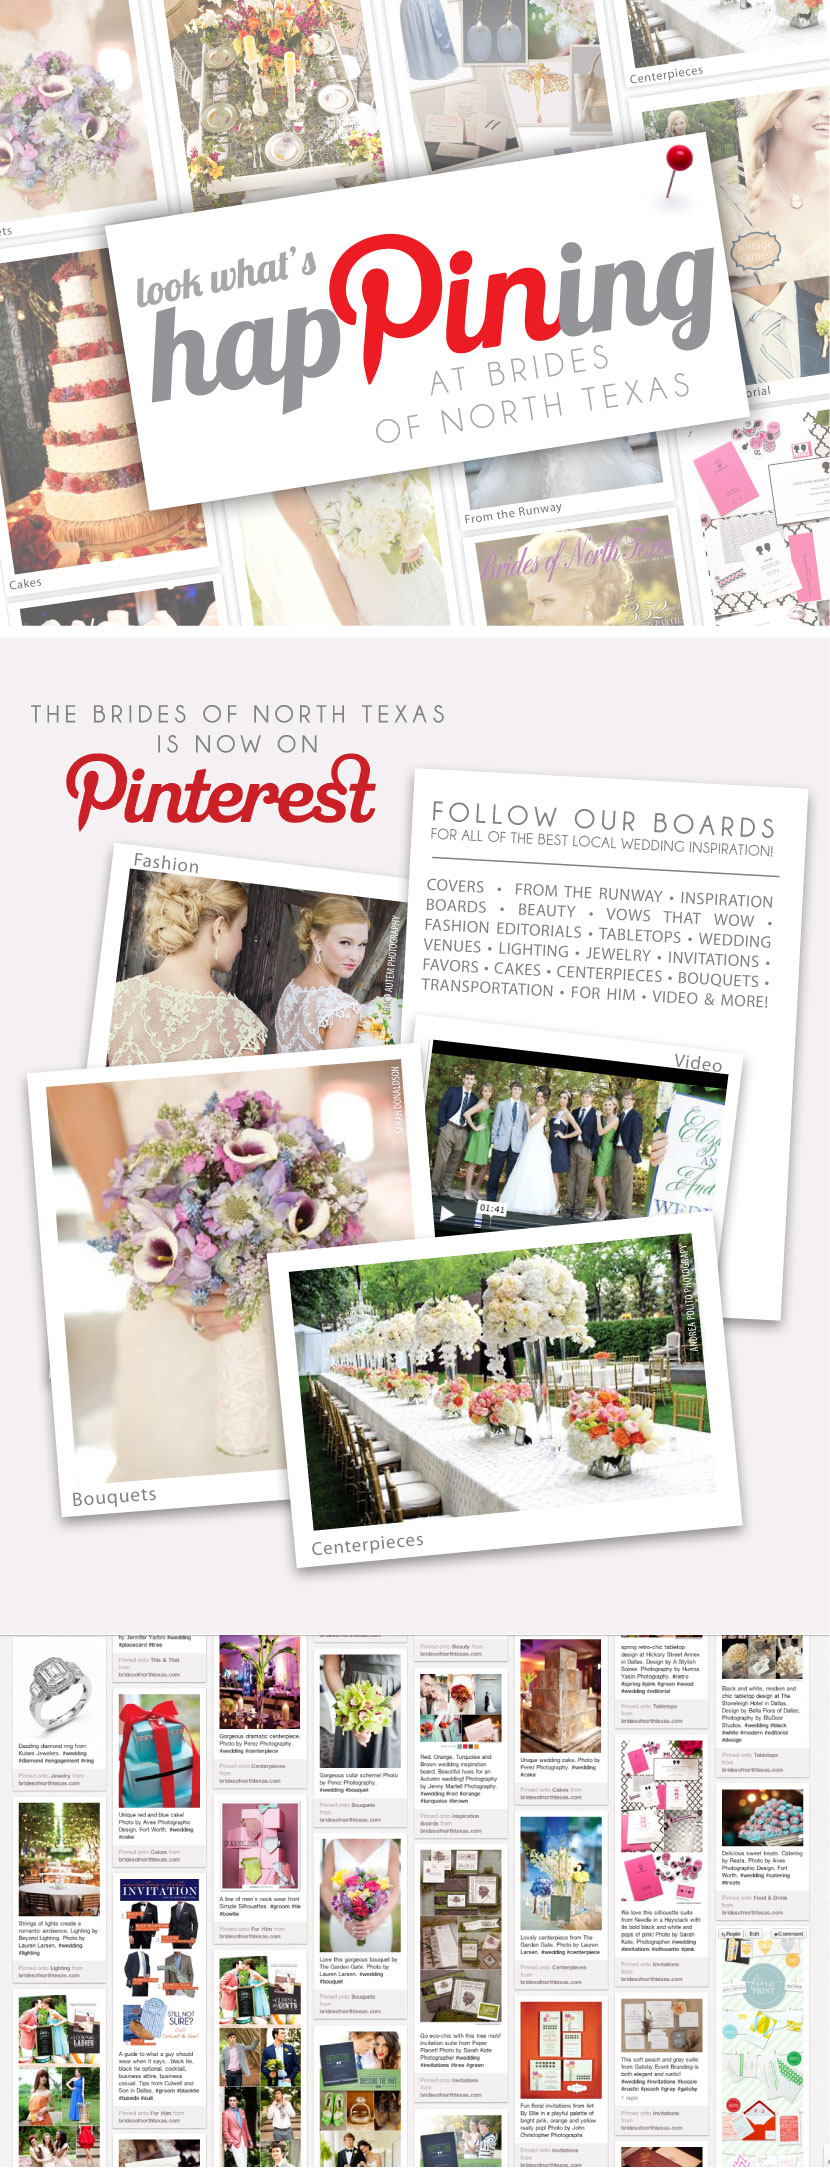 Brides of North Texas is now on Pinterest!